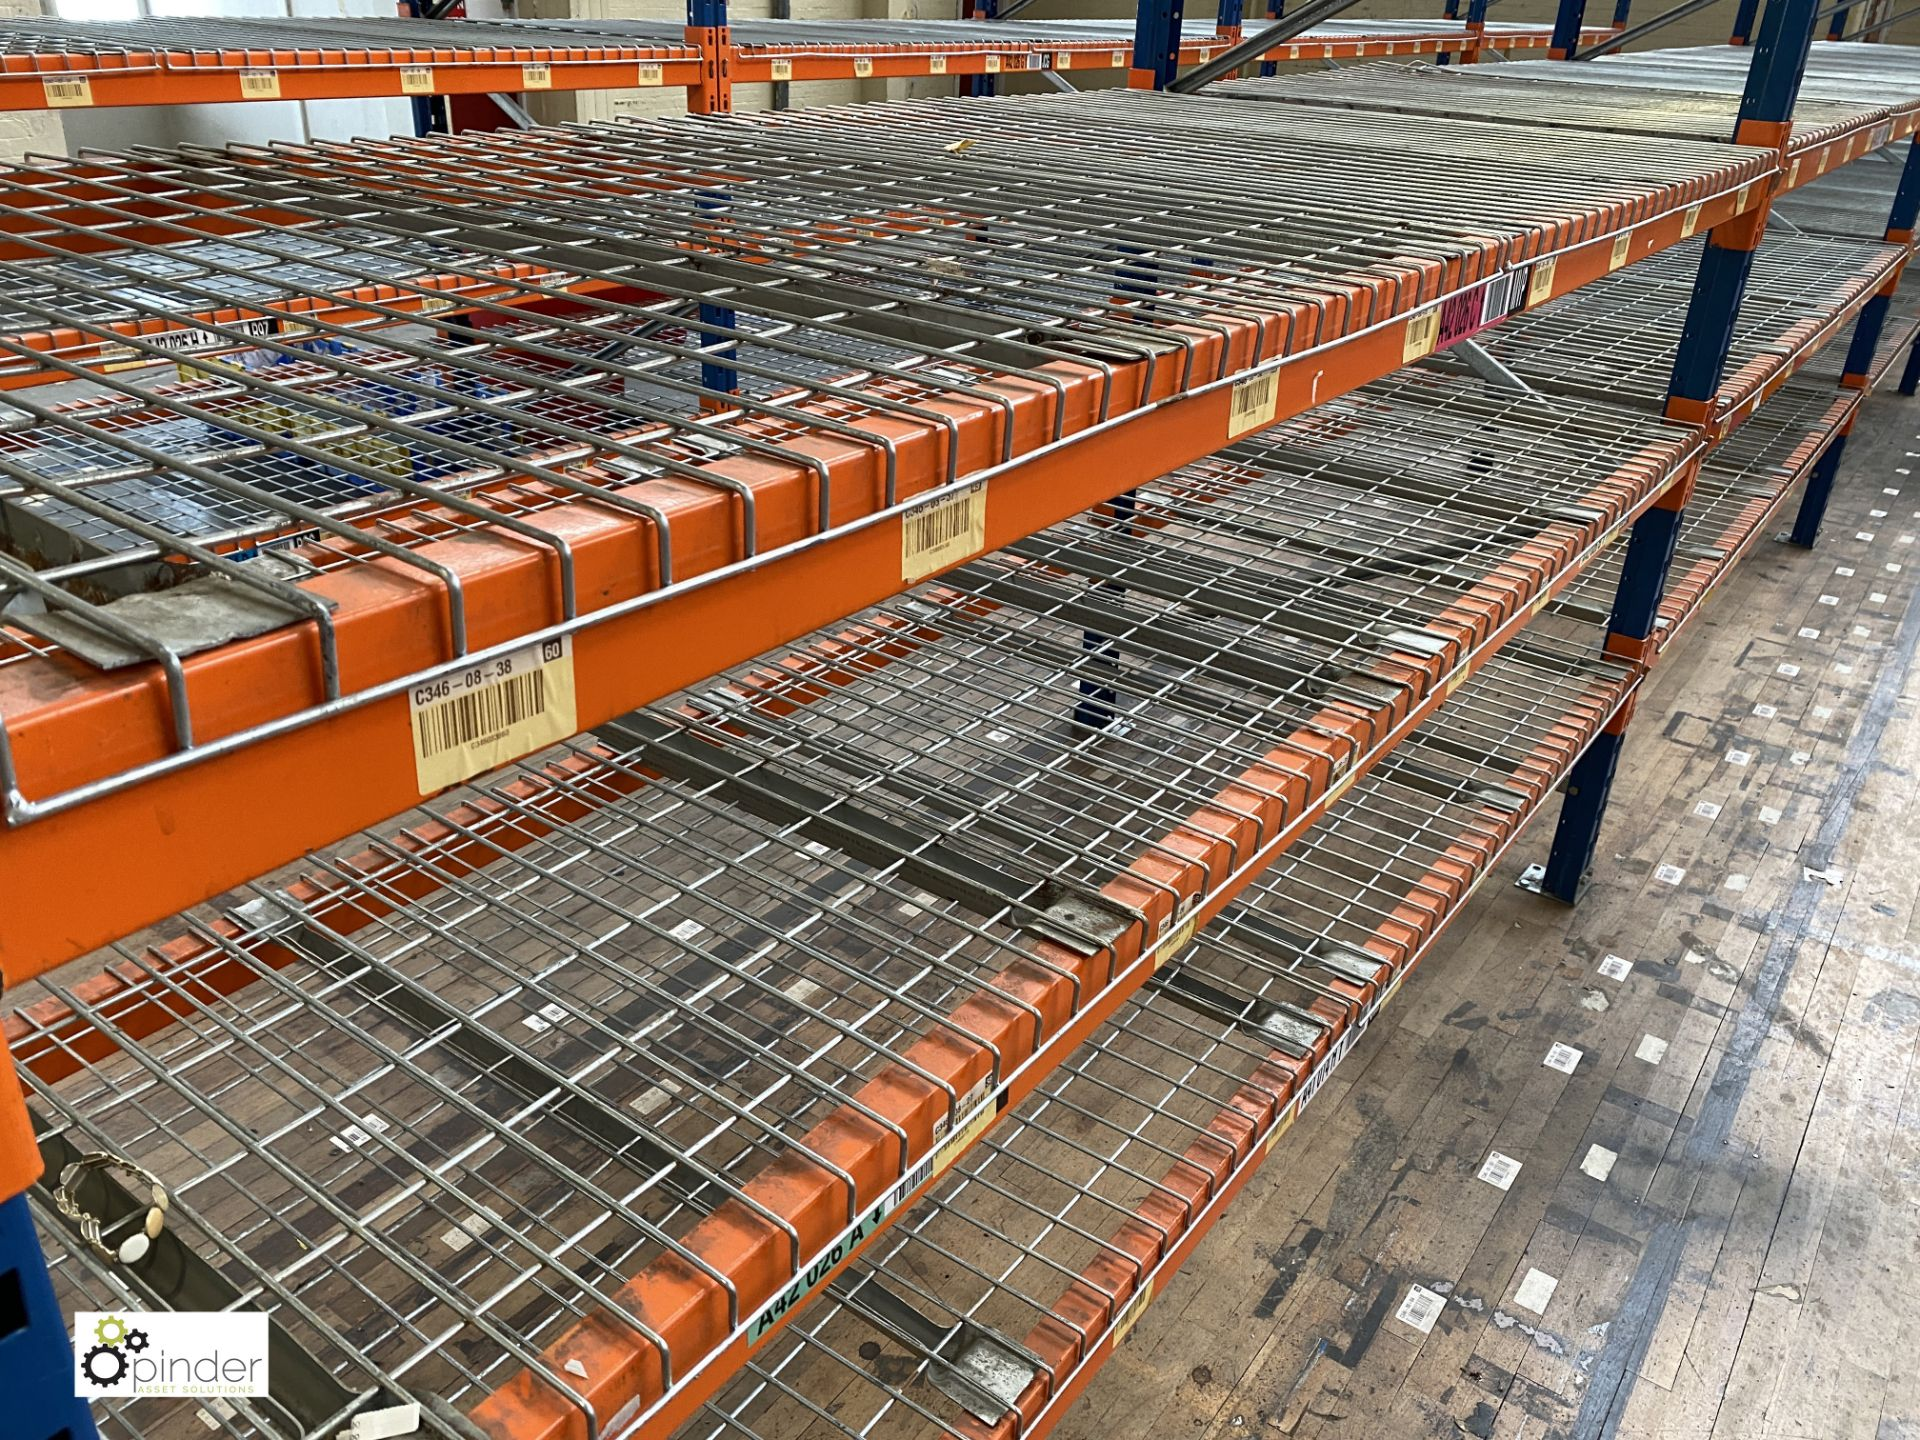 4 bays PSS 2K85 16 boltless Stock Racking, comprising 5 uprights 2400mm x 1200mm, 32 beams 2700mm, - Image 4 of 5